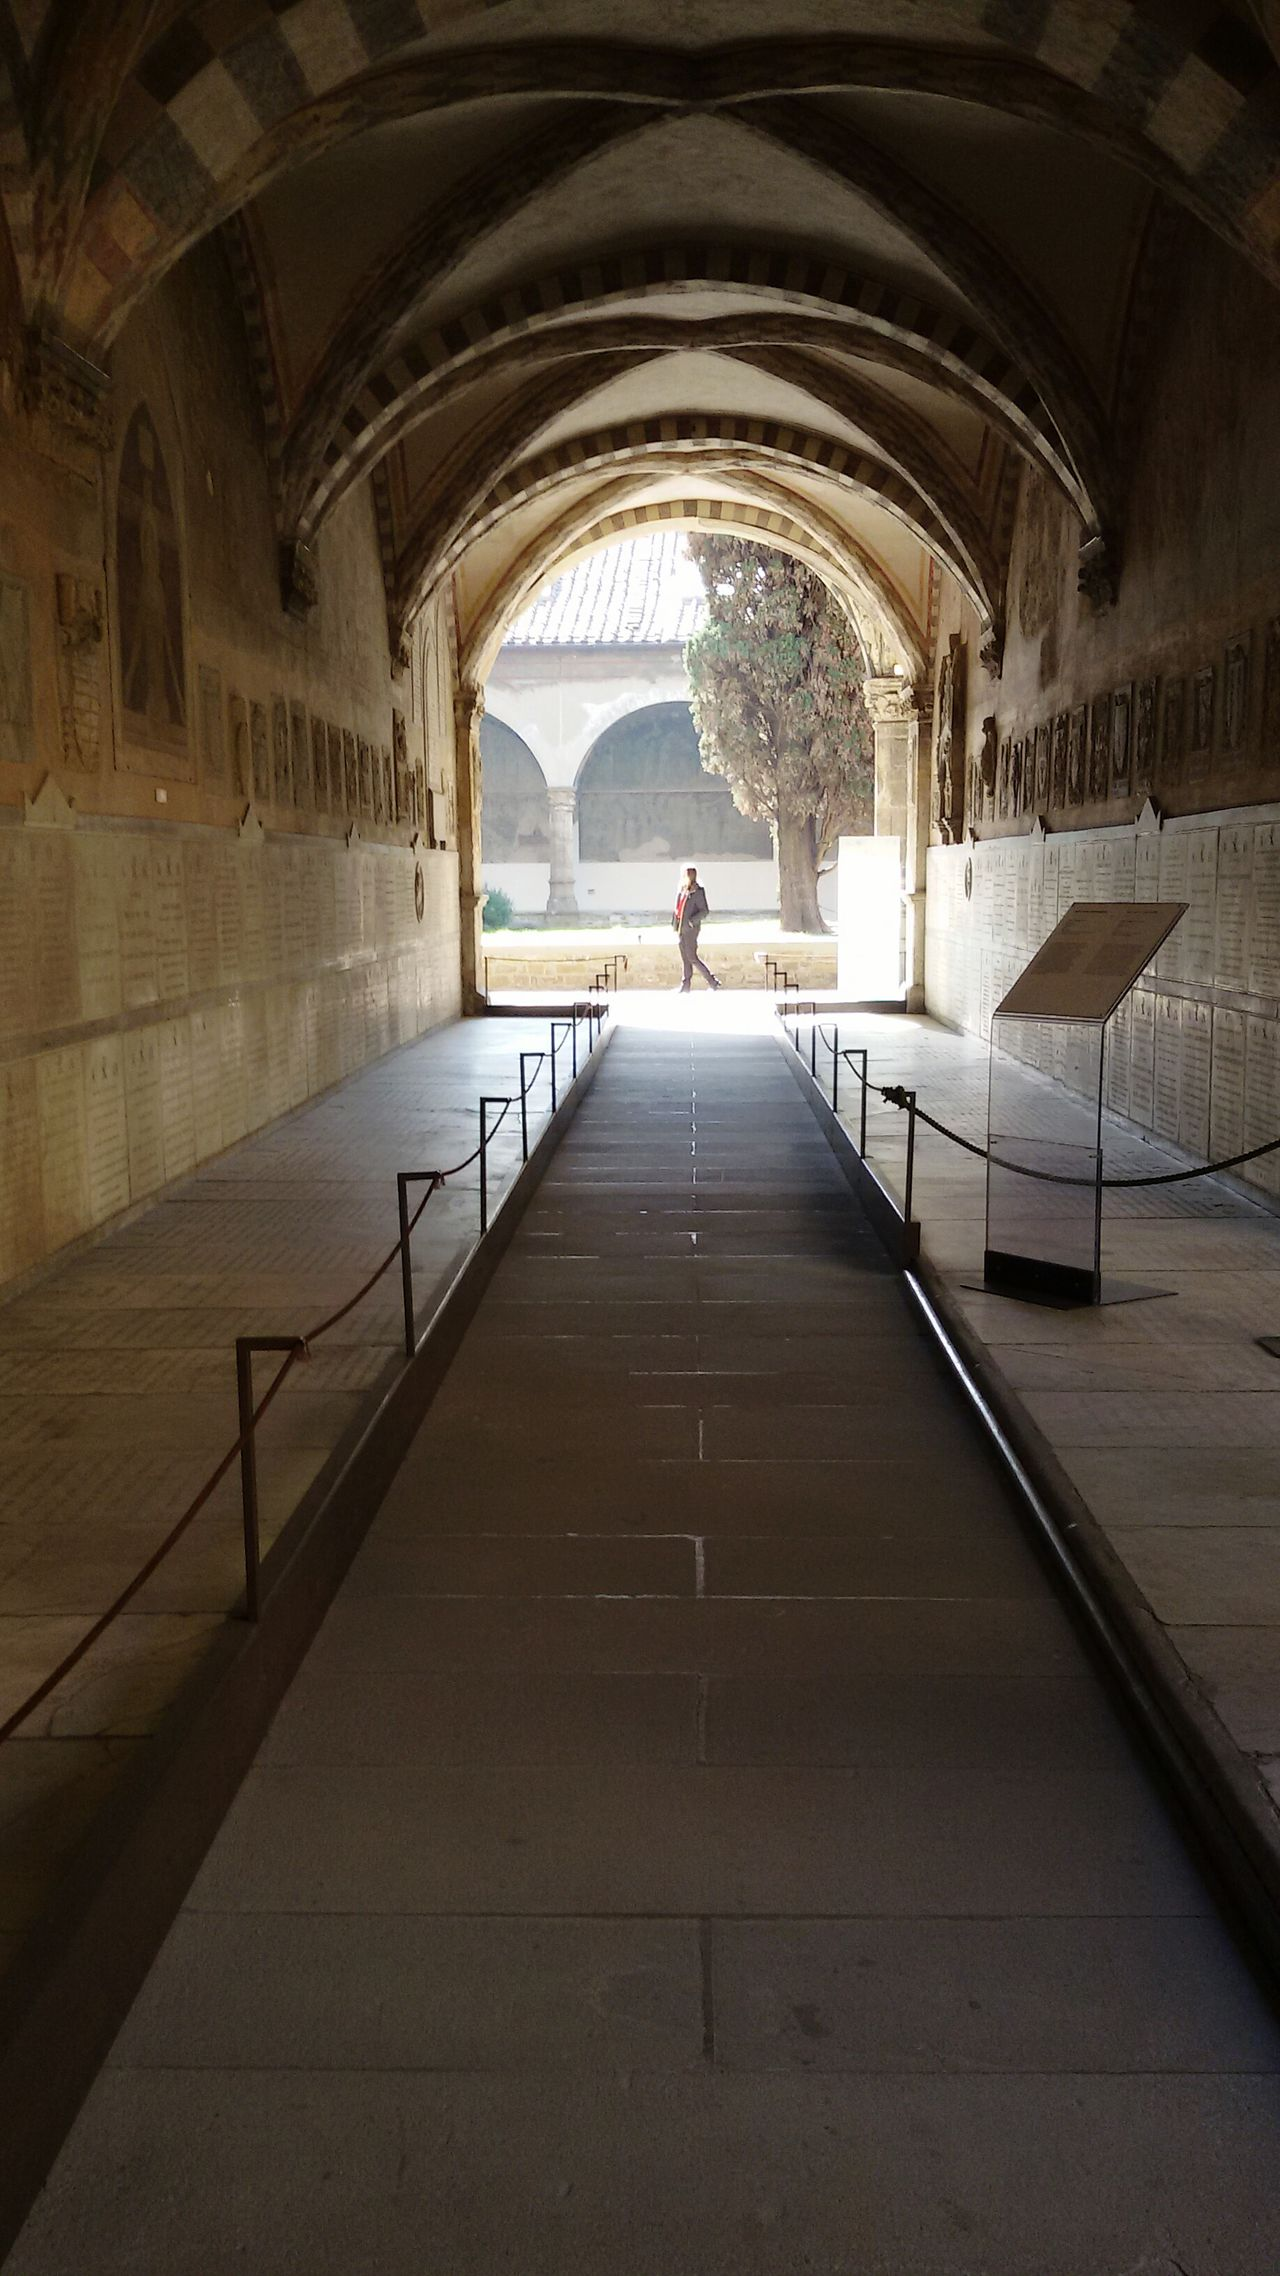 Firenze Archway Day Arch Architecture Built Structure The Way Forward Cloister Tunnel Santa Maria Novella One Woman Only One Person Antique Church sunny day Travel Destinations City